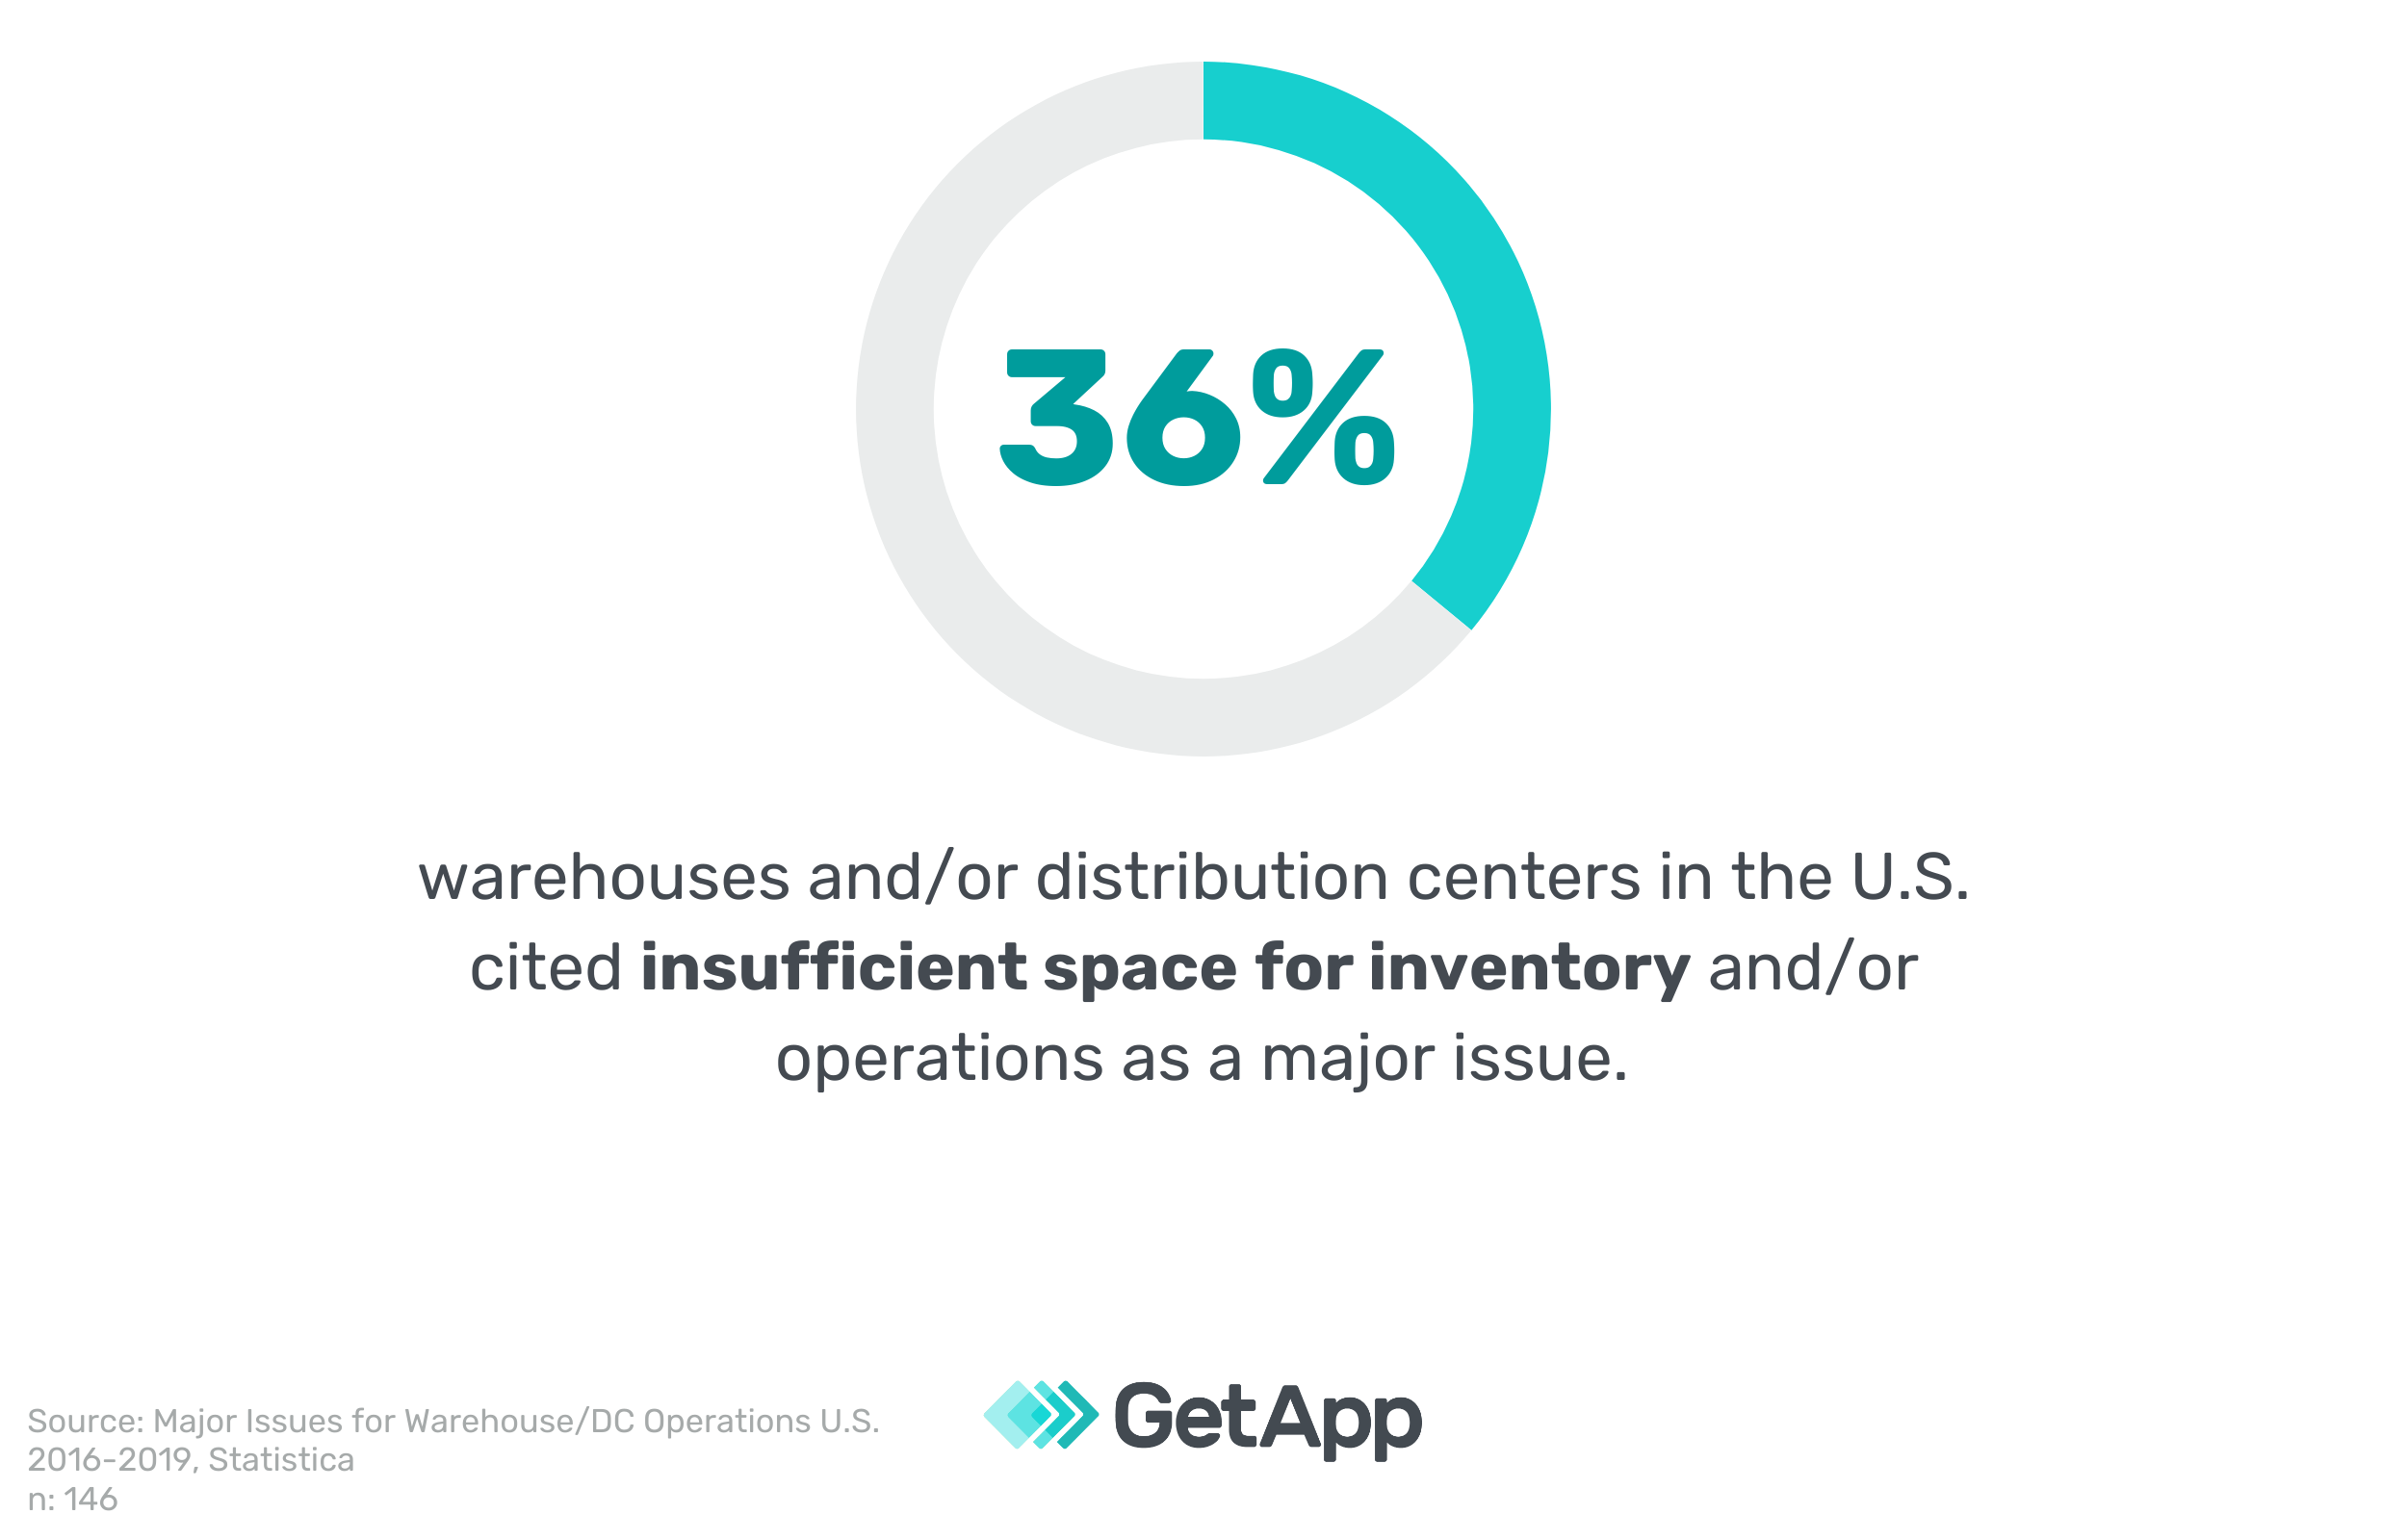 36% of warehouses and/or distribution centers in the U.S. cited insufficient space for inventory and/or operations as a major issue.